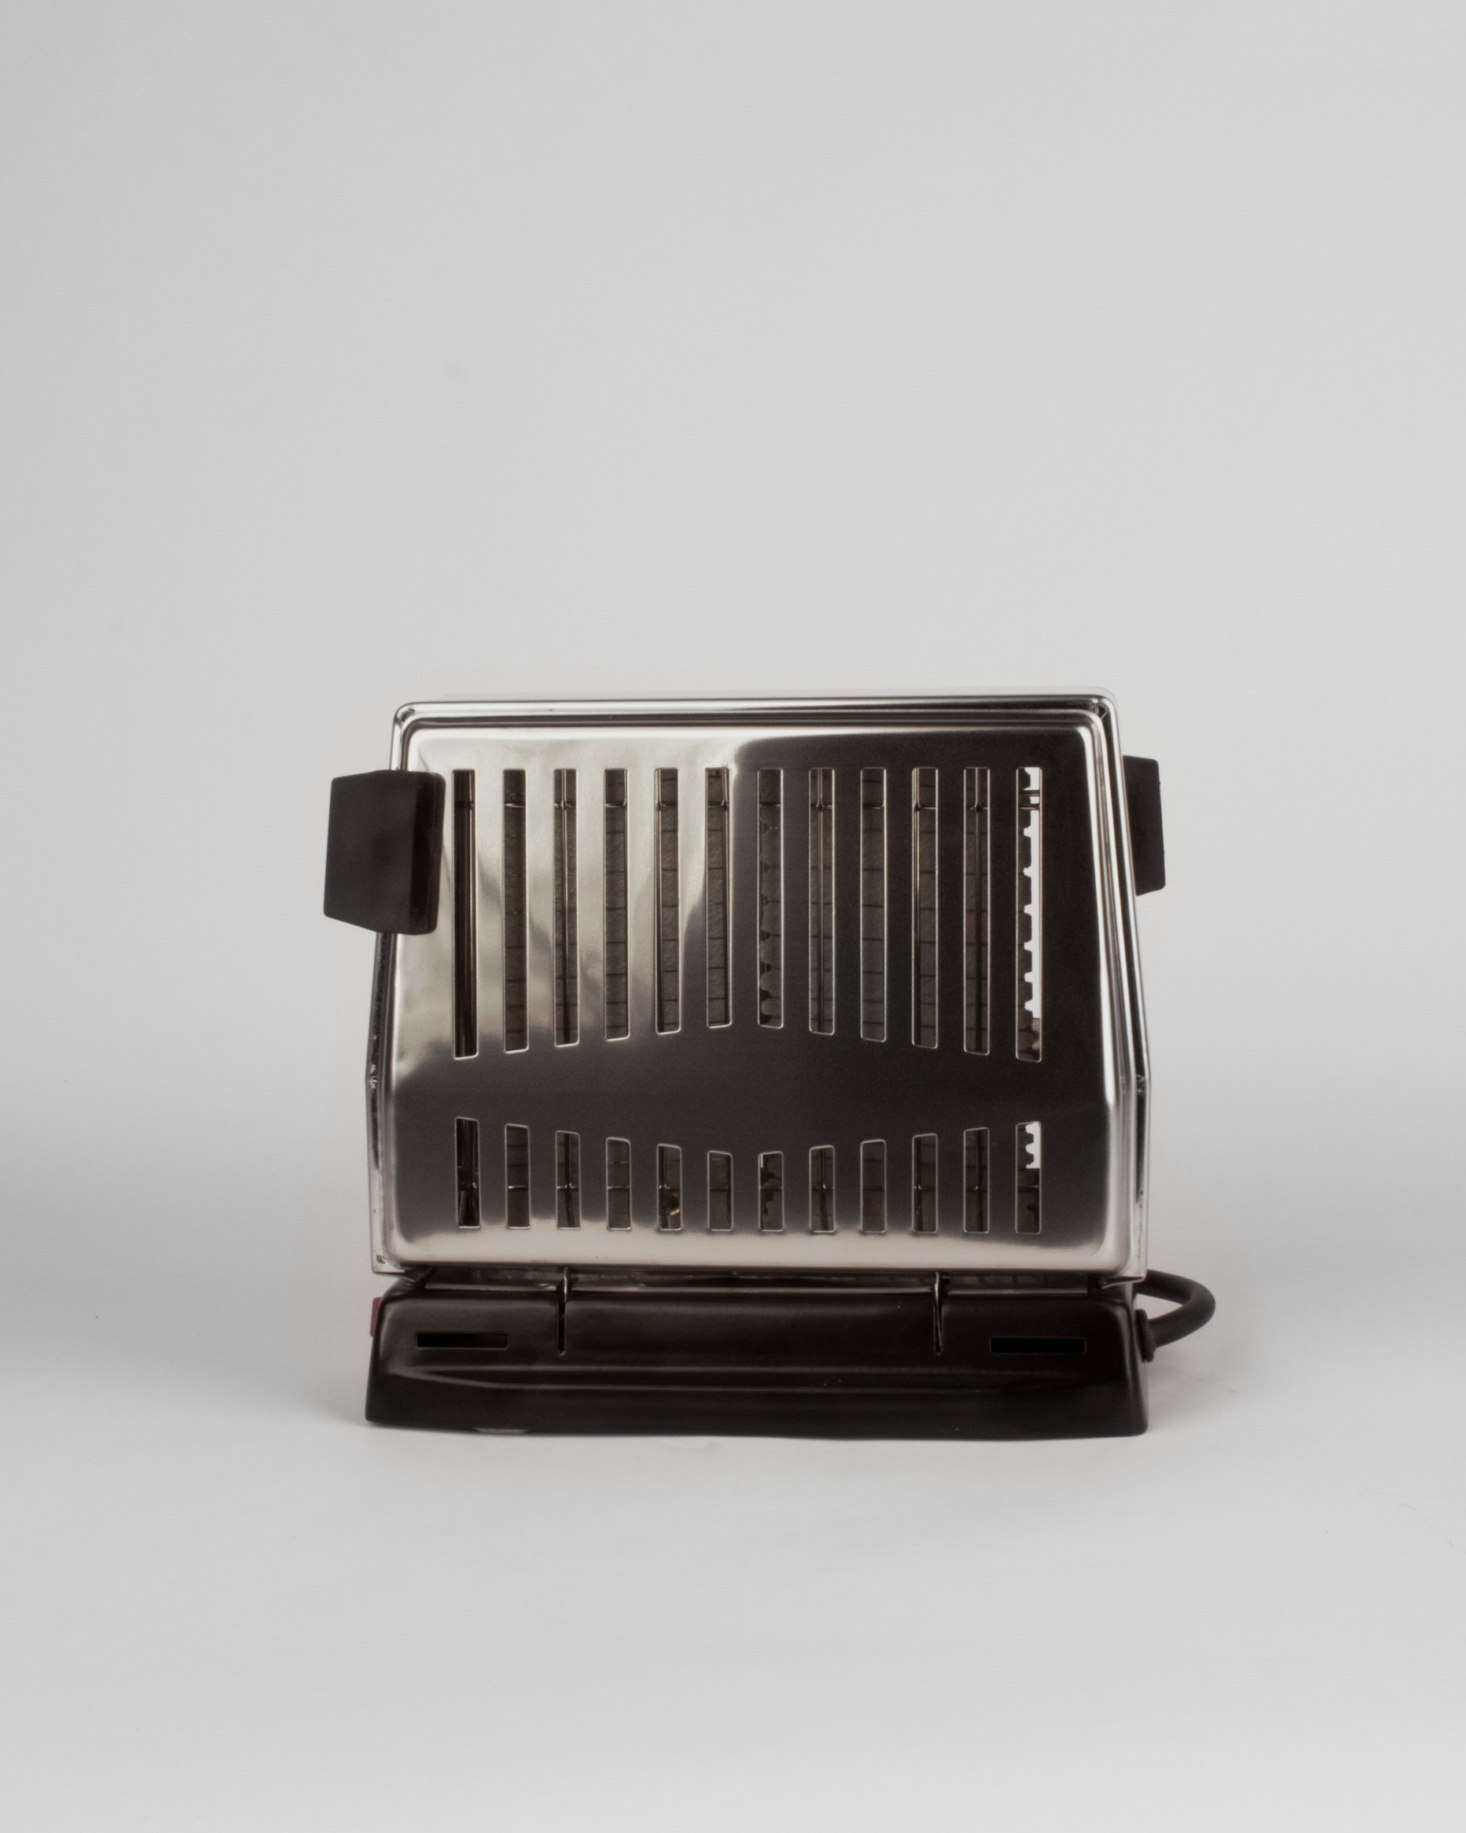 Julie has her eye on this old-fashioned Electric Toaster, €..